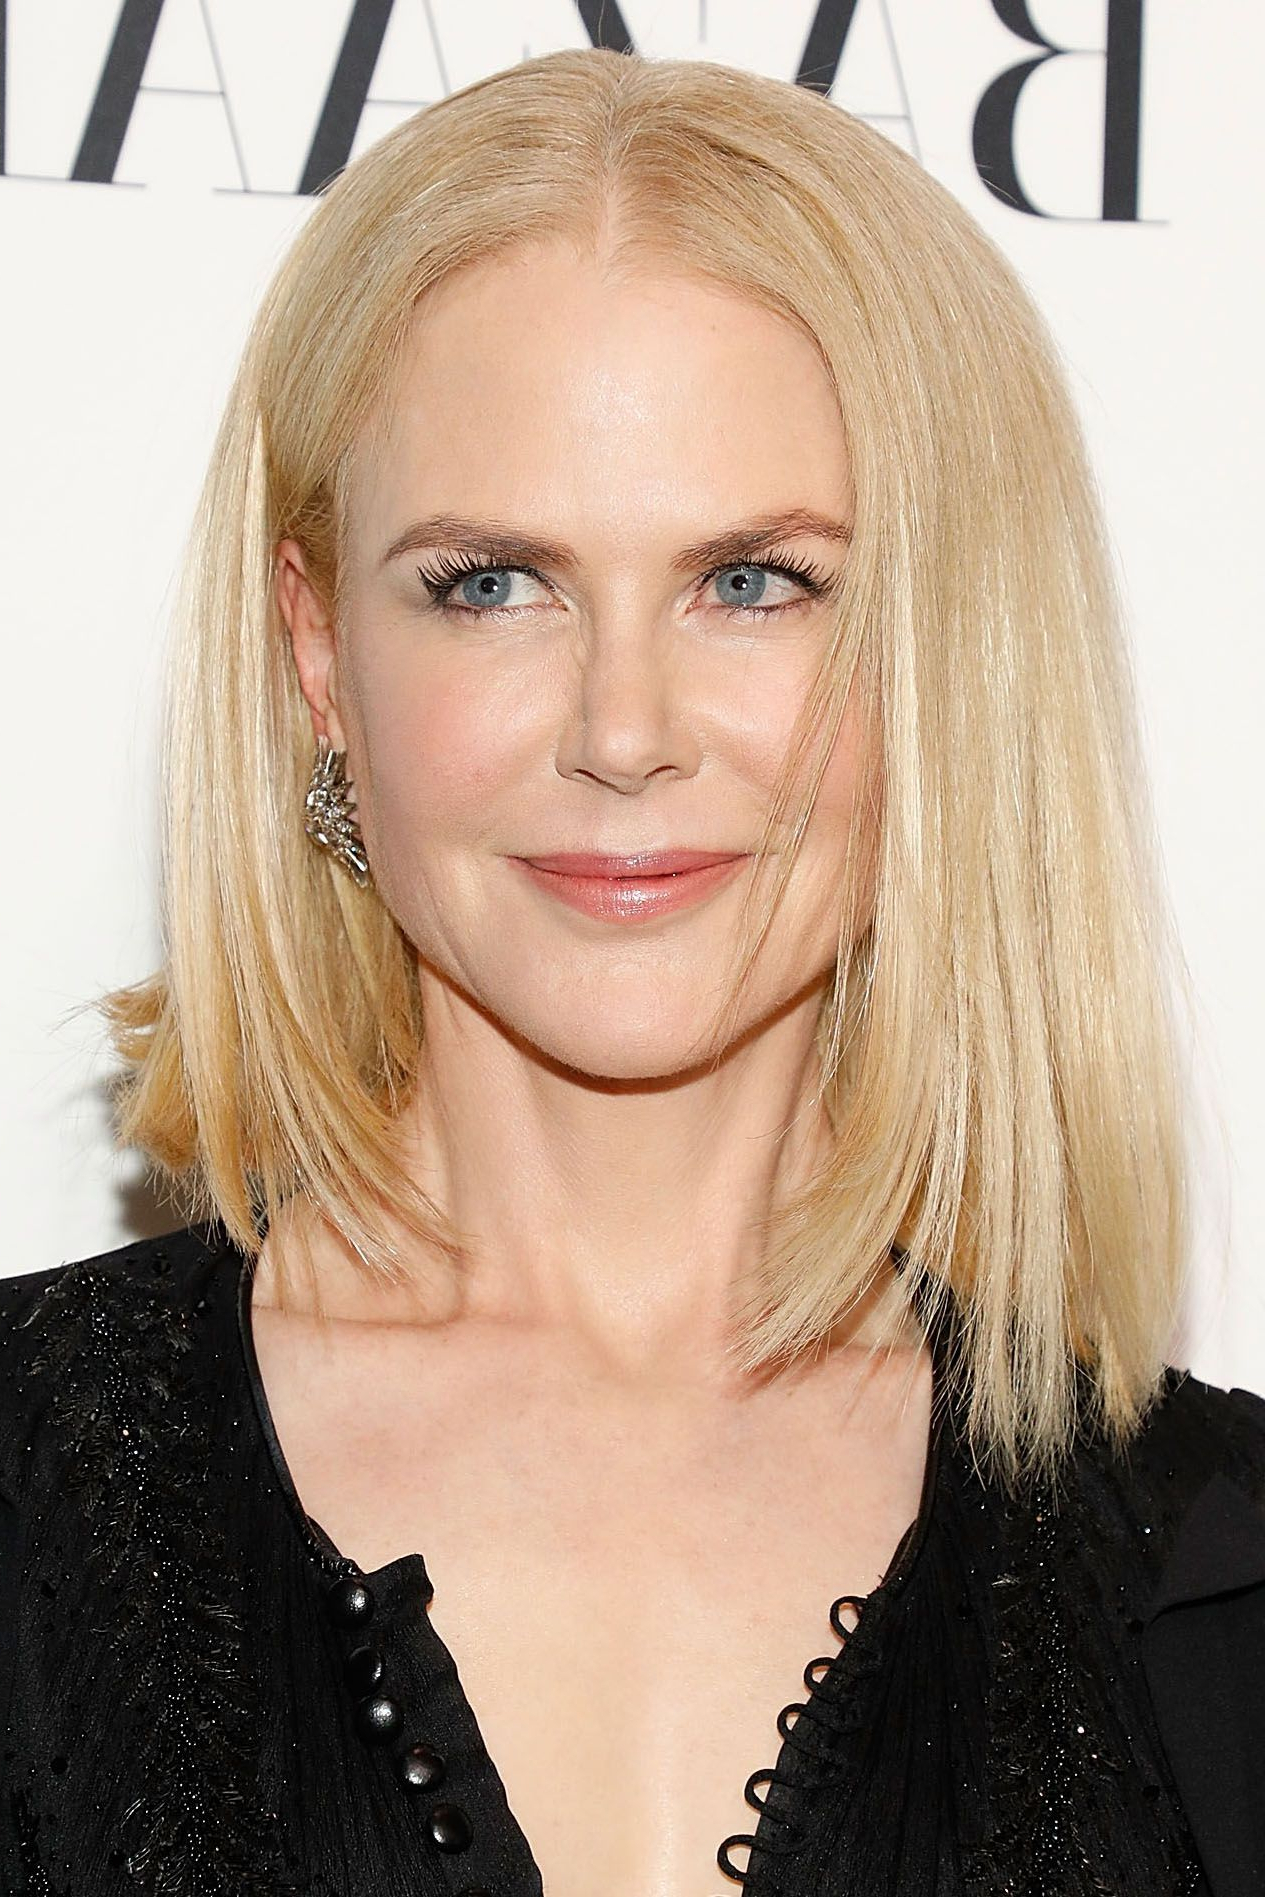 50 Best Hairstyles For Women Over 50 – Celebrity Haircuts Over 50 With Short Hairstyles For 50 Year Old Woman (View 11 of 25)